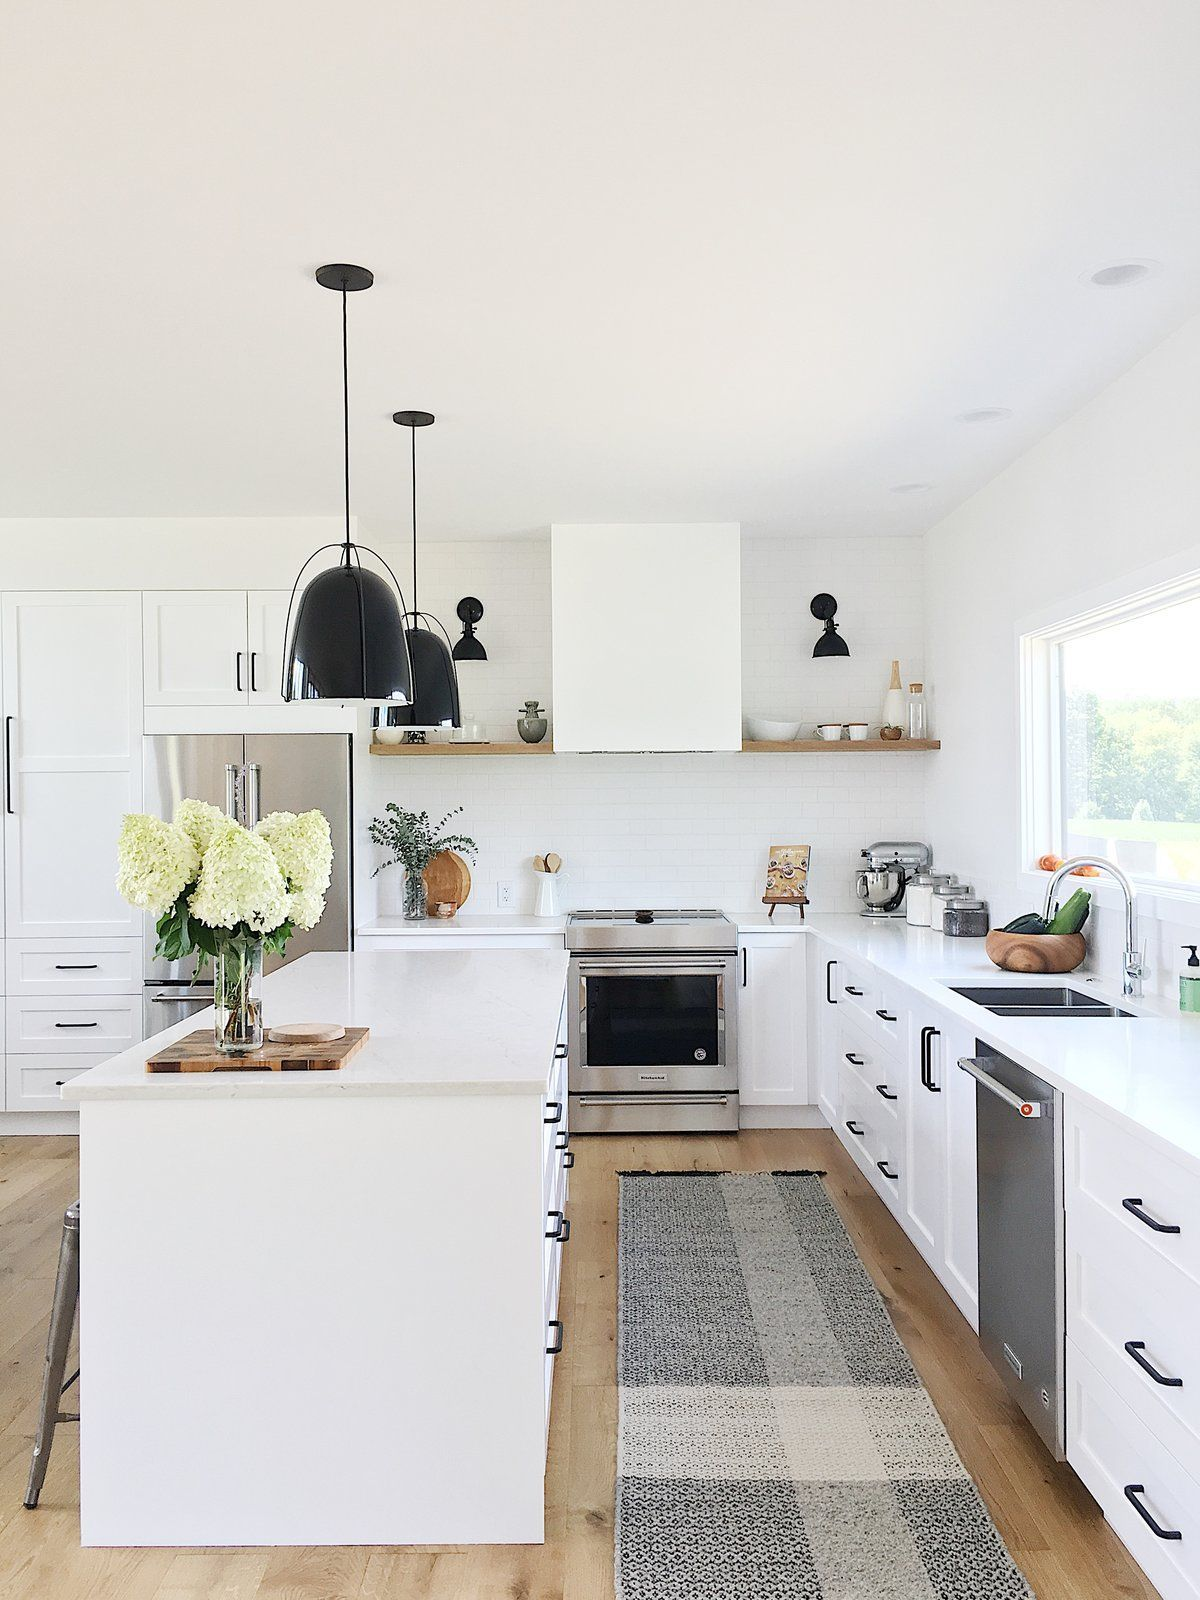 4 Ways To Revamp Your Kitchen Cabinets For Any Budget